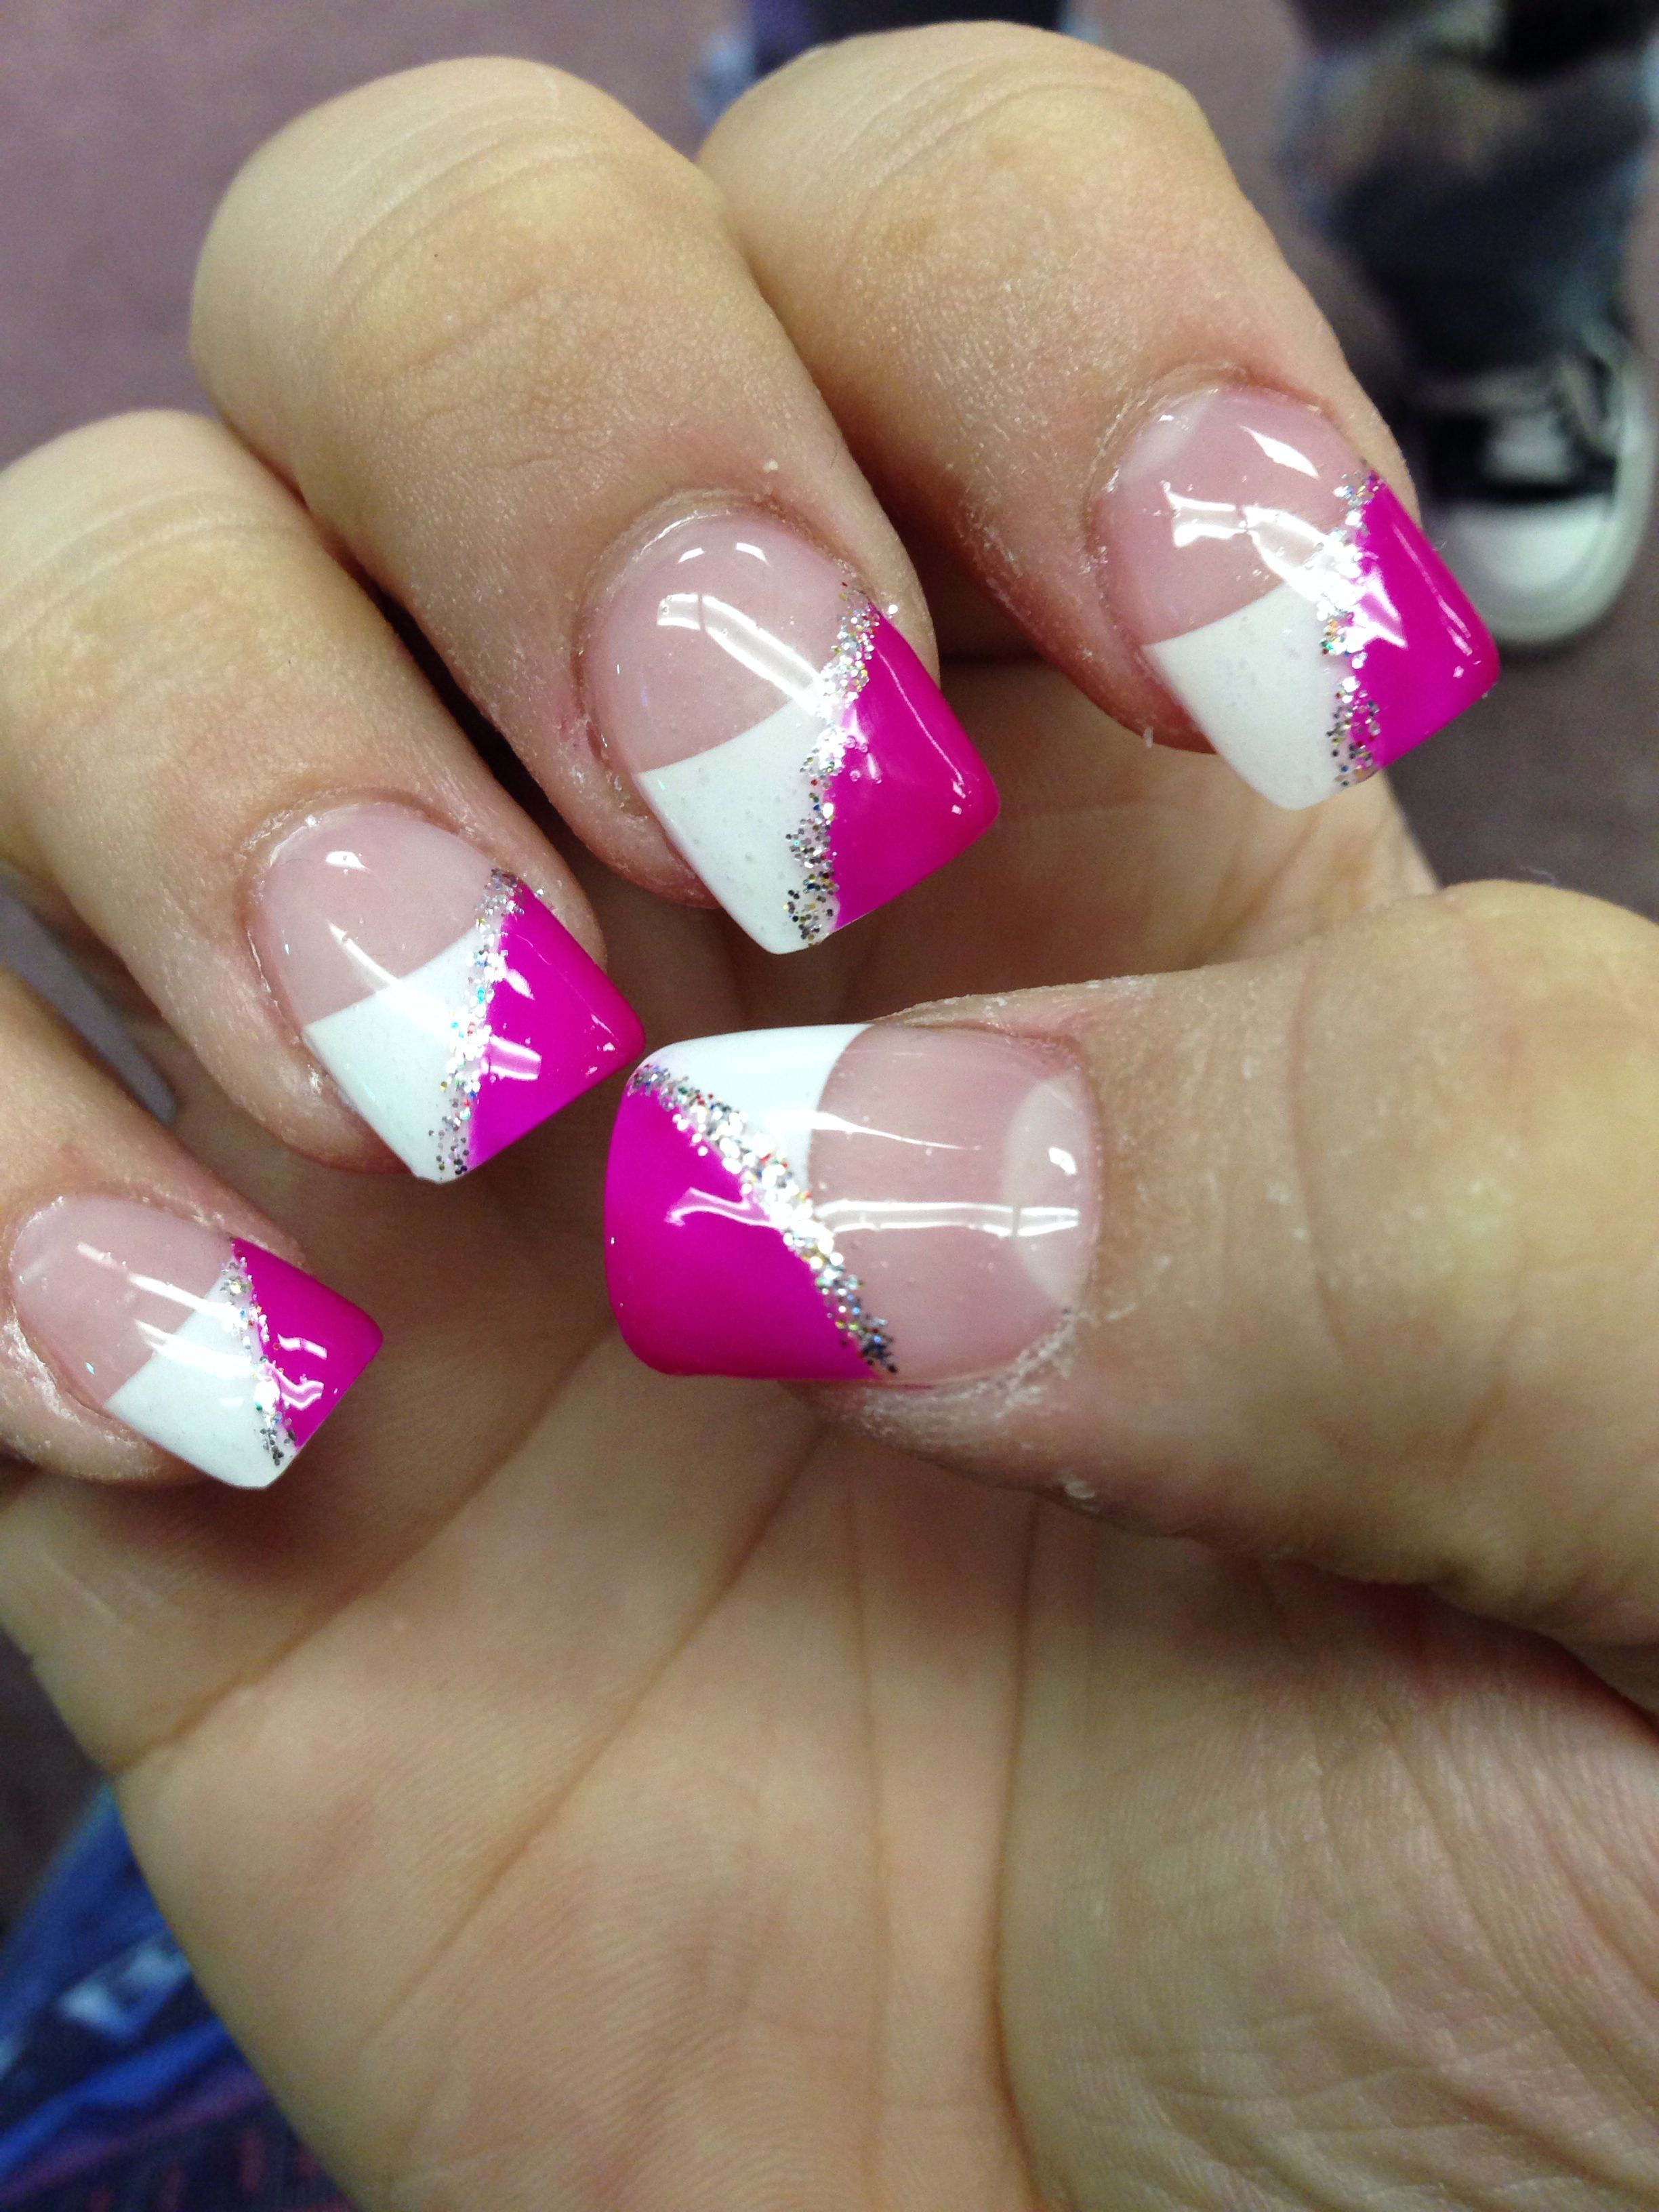 gel nails. Change the pink to a different color in 2020